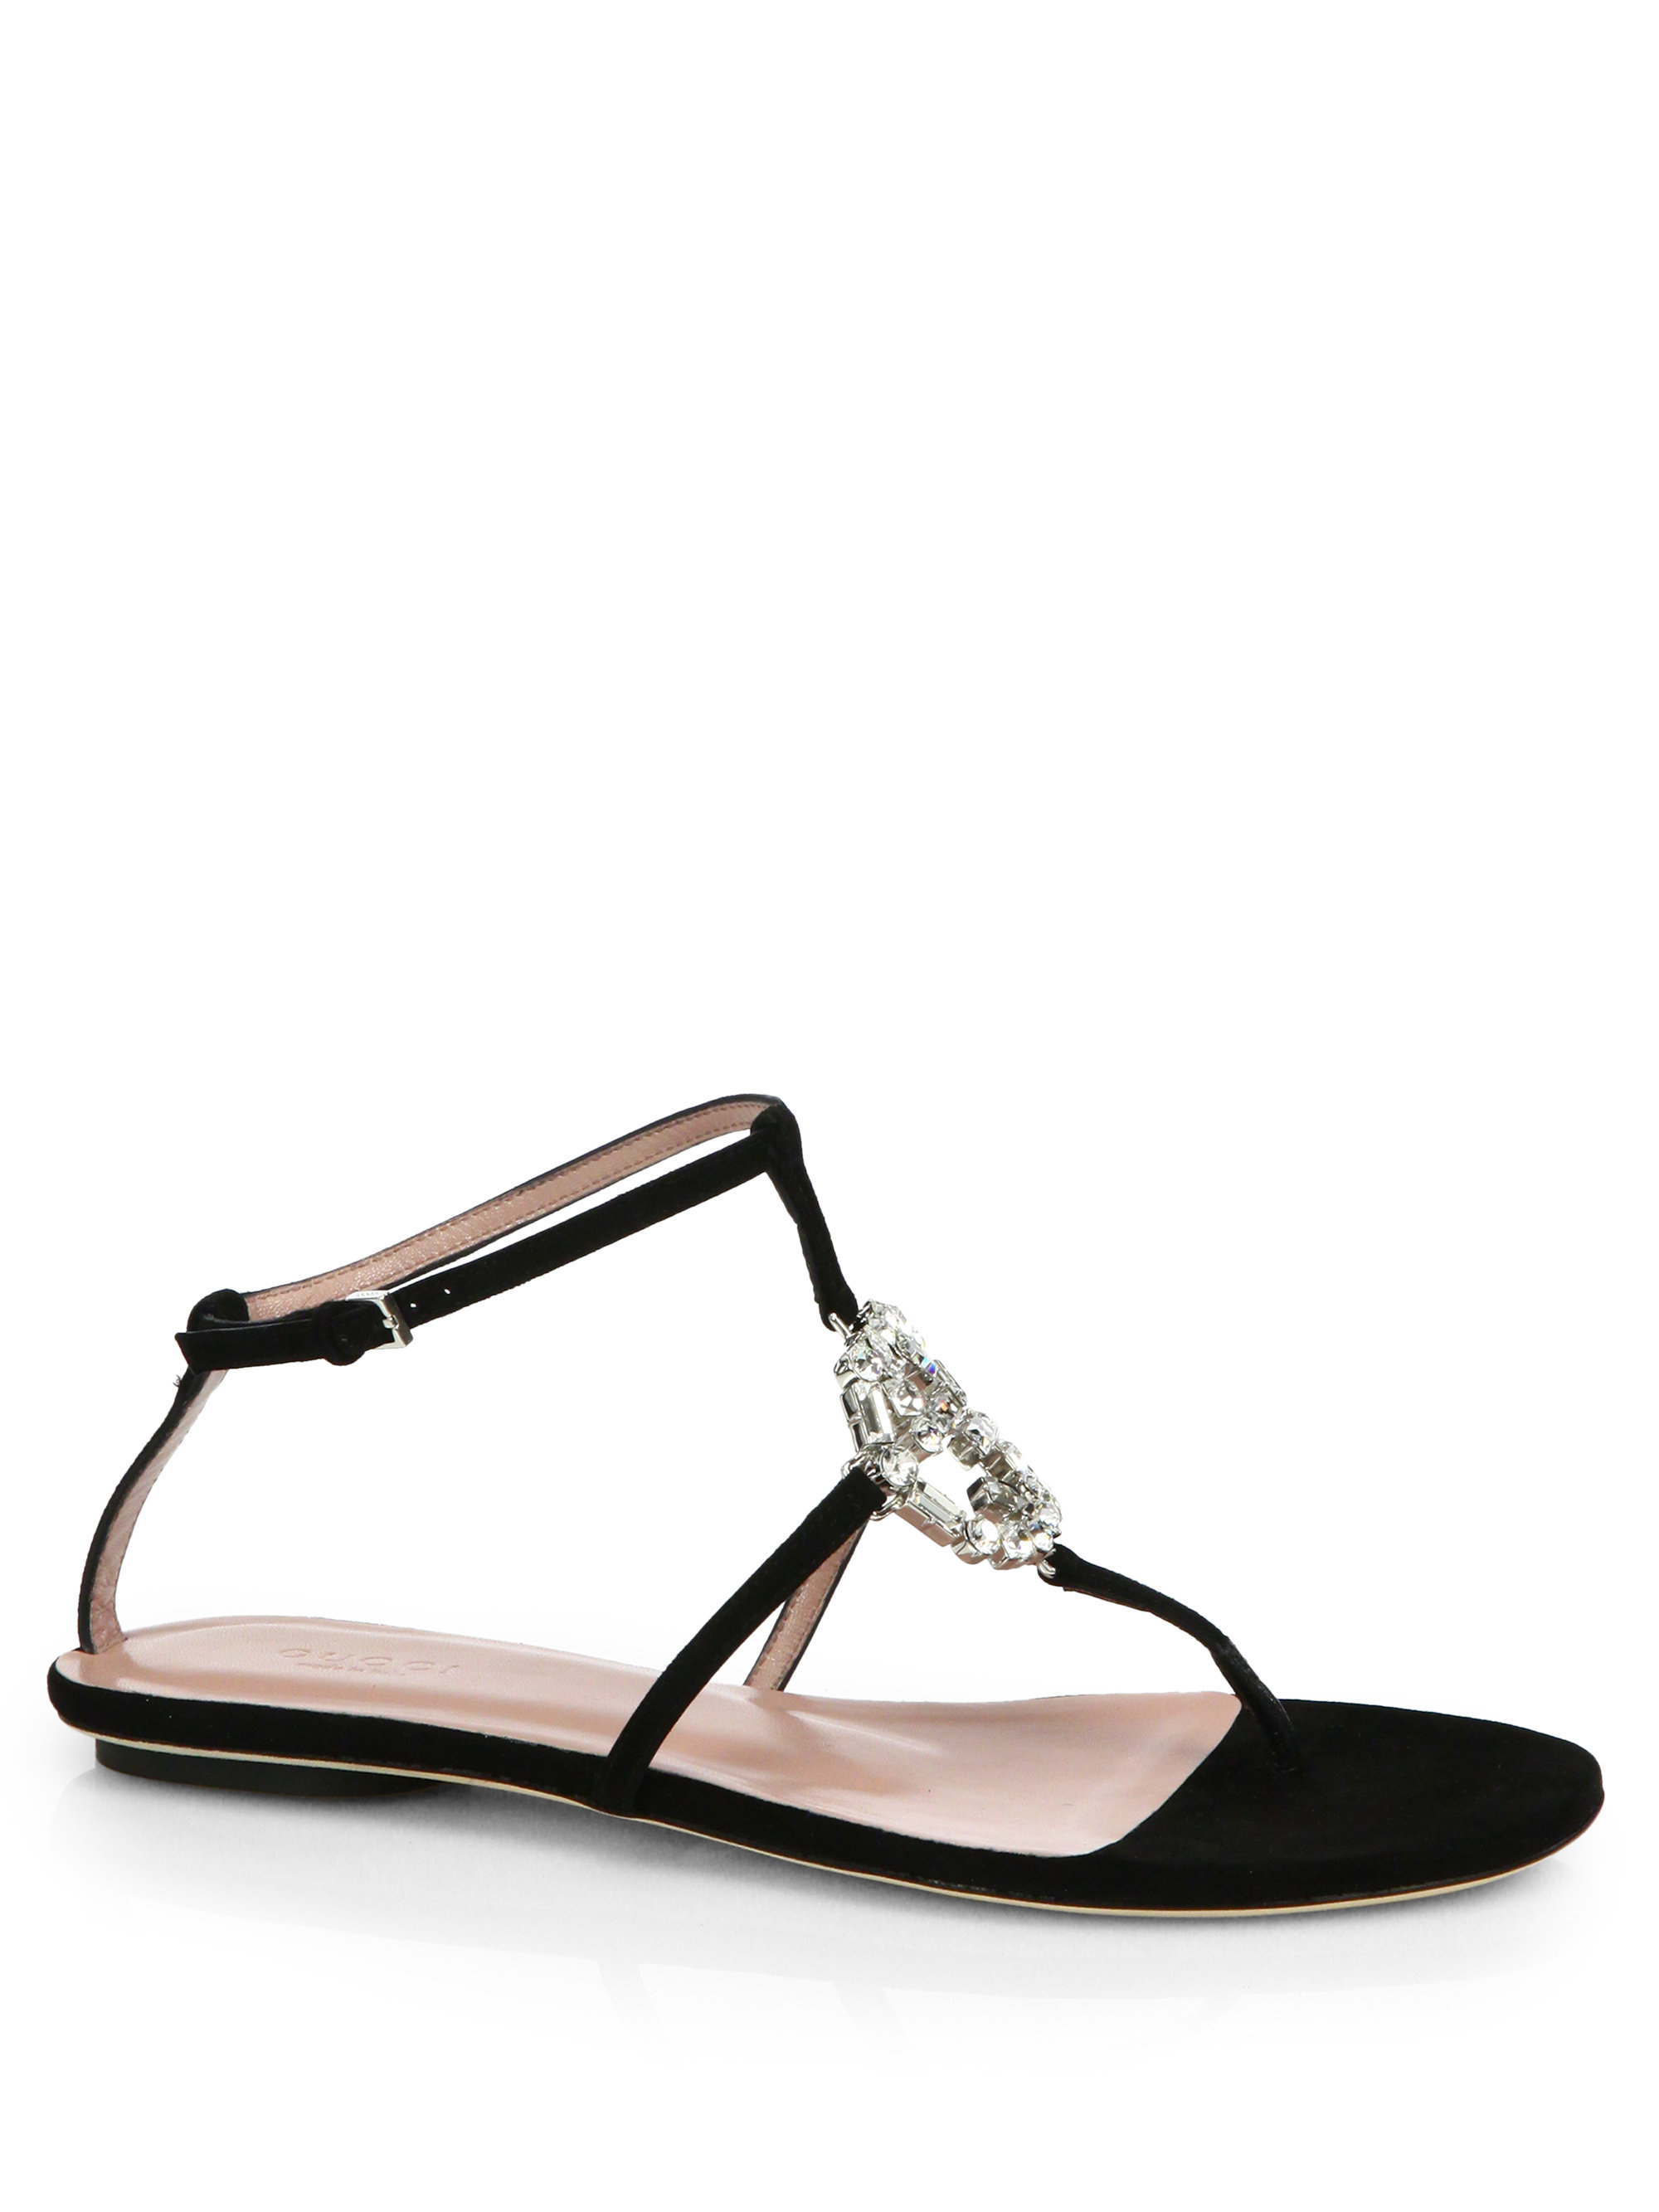 Lyst - Gucci GG Crystal Leather and Suede Sandals in Black